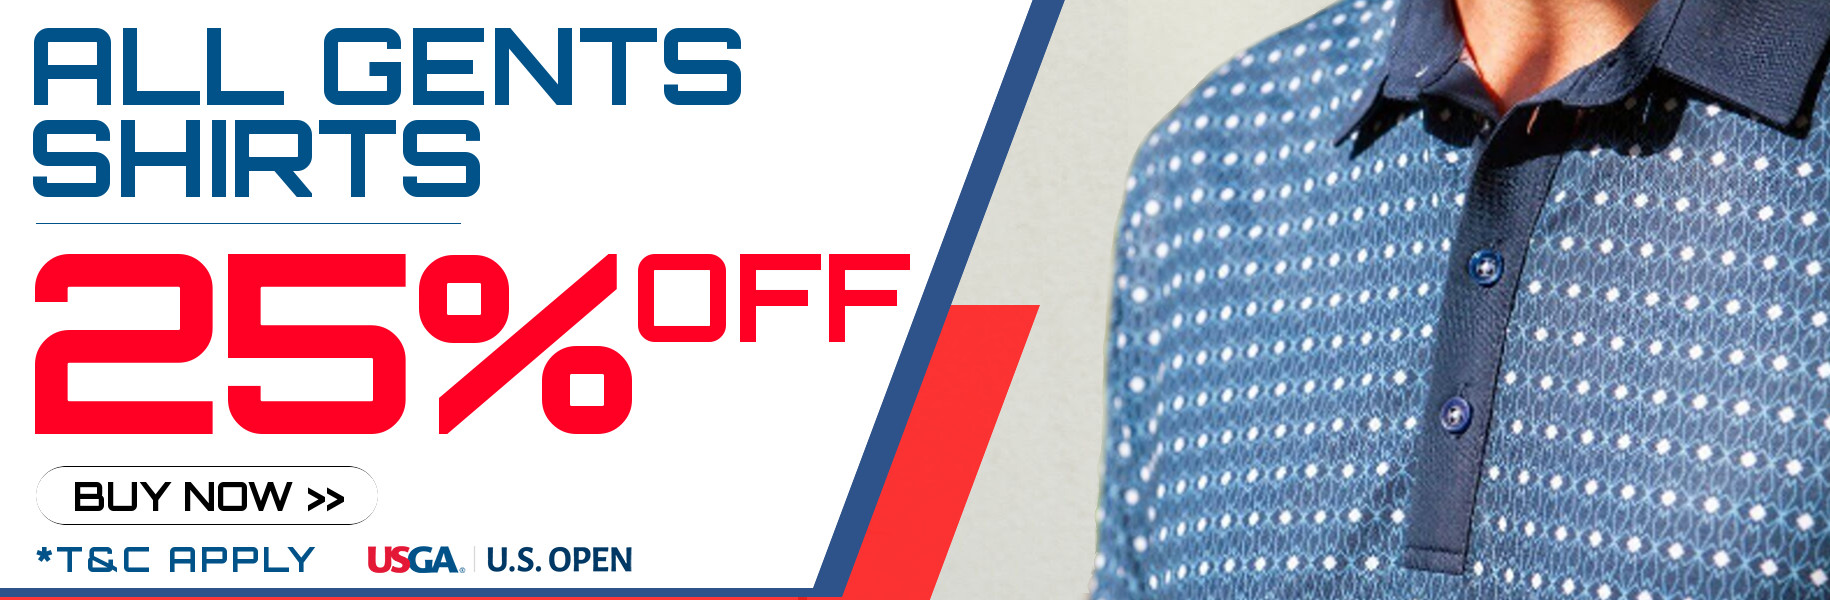 US Open Offer - 25% Off All Gents Shirts